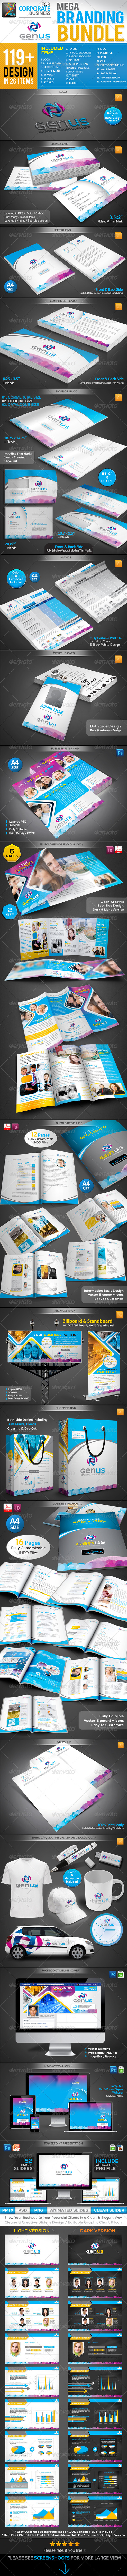 GraphicRiver GENUS Corporate Business ID Mega Branding Bundle 5860865